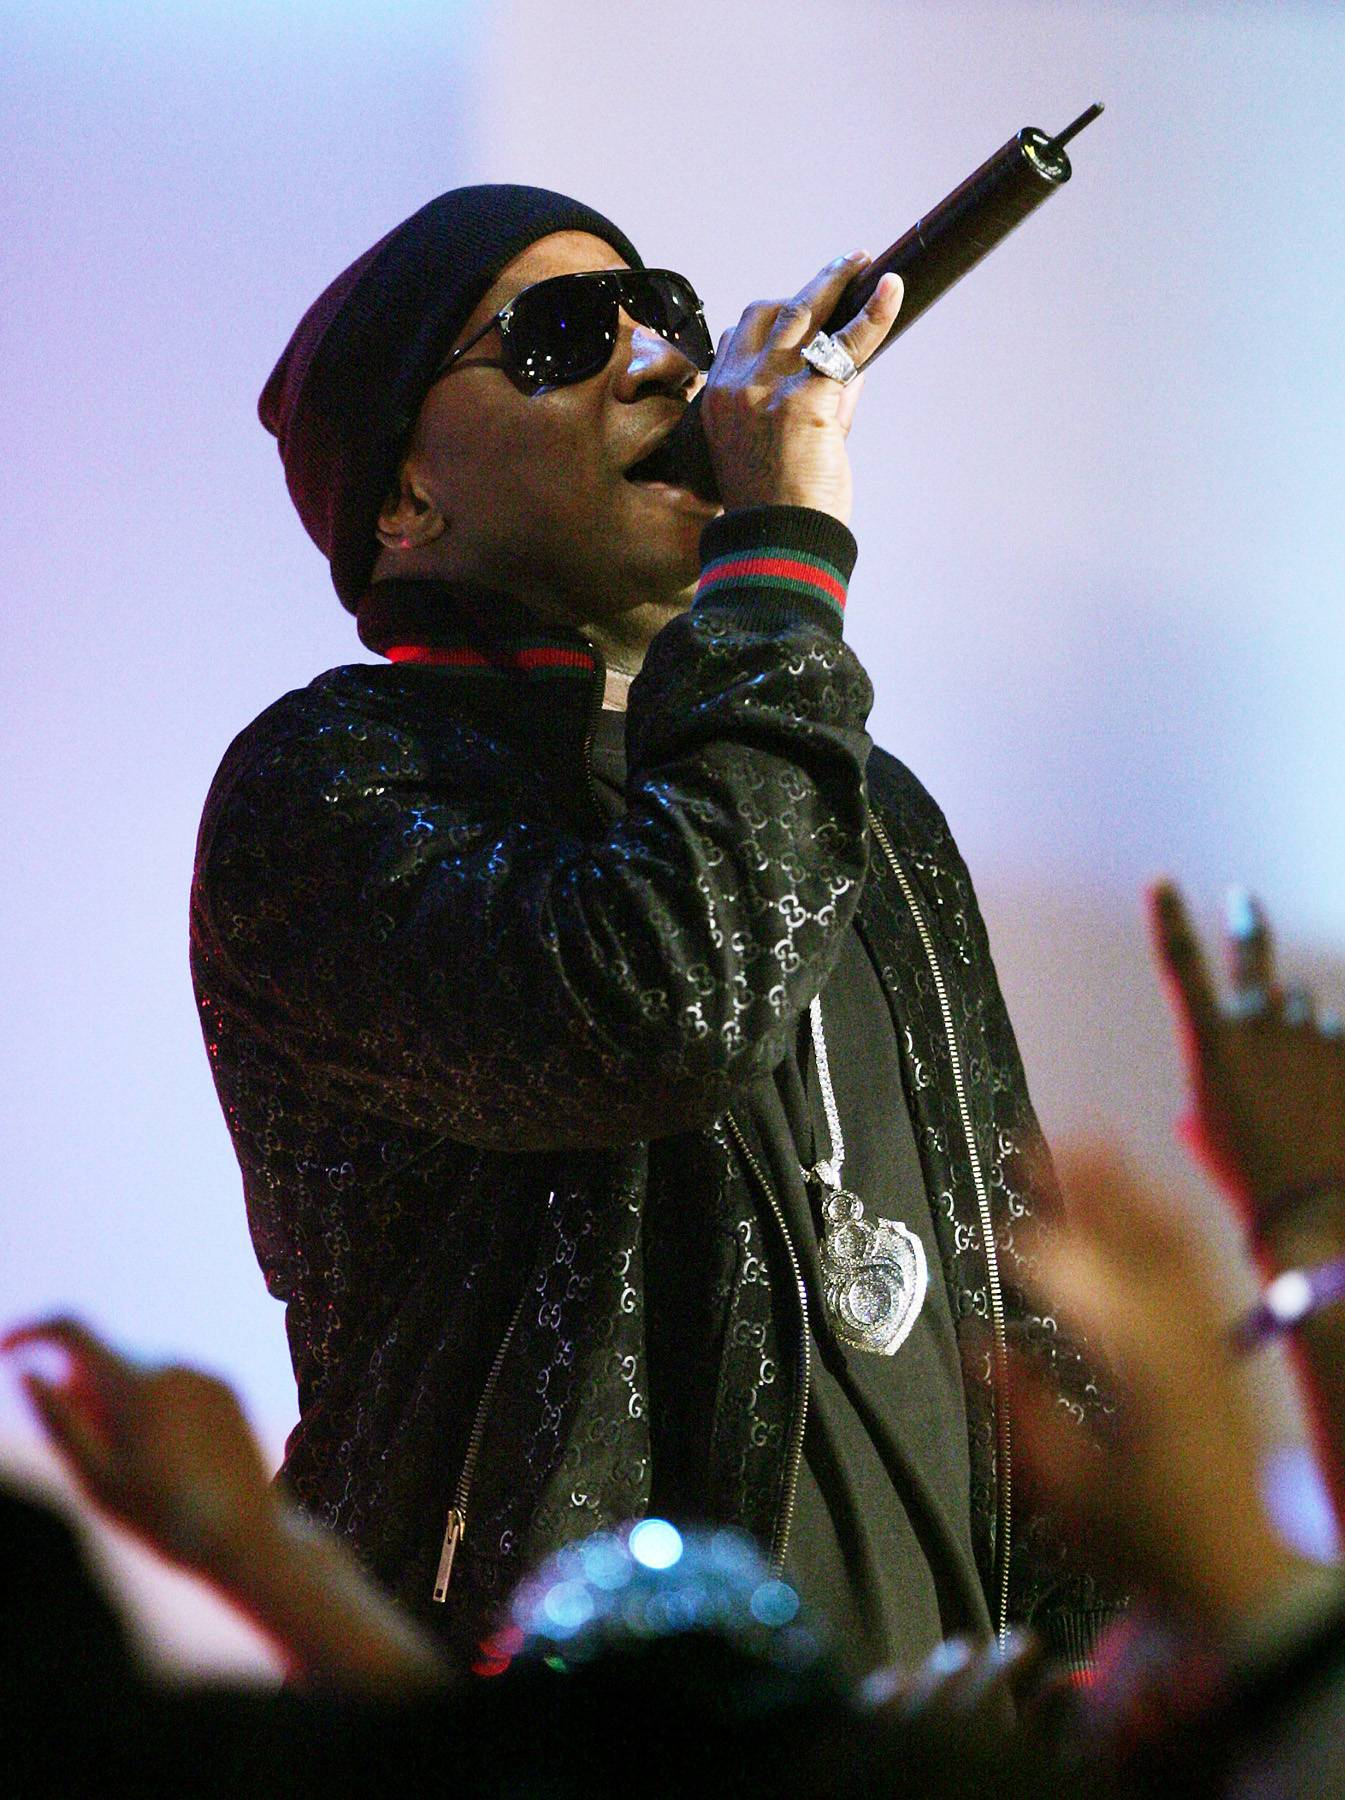 Jeezy - Can't ban the snowman — but plenty tried in 2005. As Jeezy and his snowman shirts were becoming popular nationwide, particularly among teens, many schools and districts began attempting to ban the attire.(Photo: Peter Kramer/Getty Images)